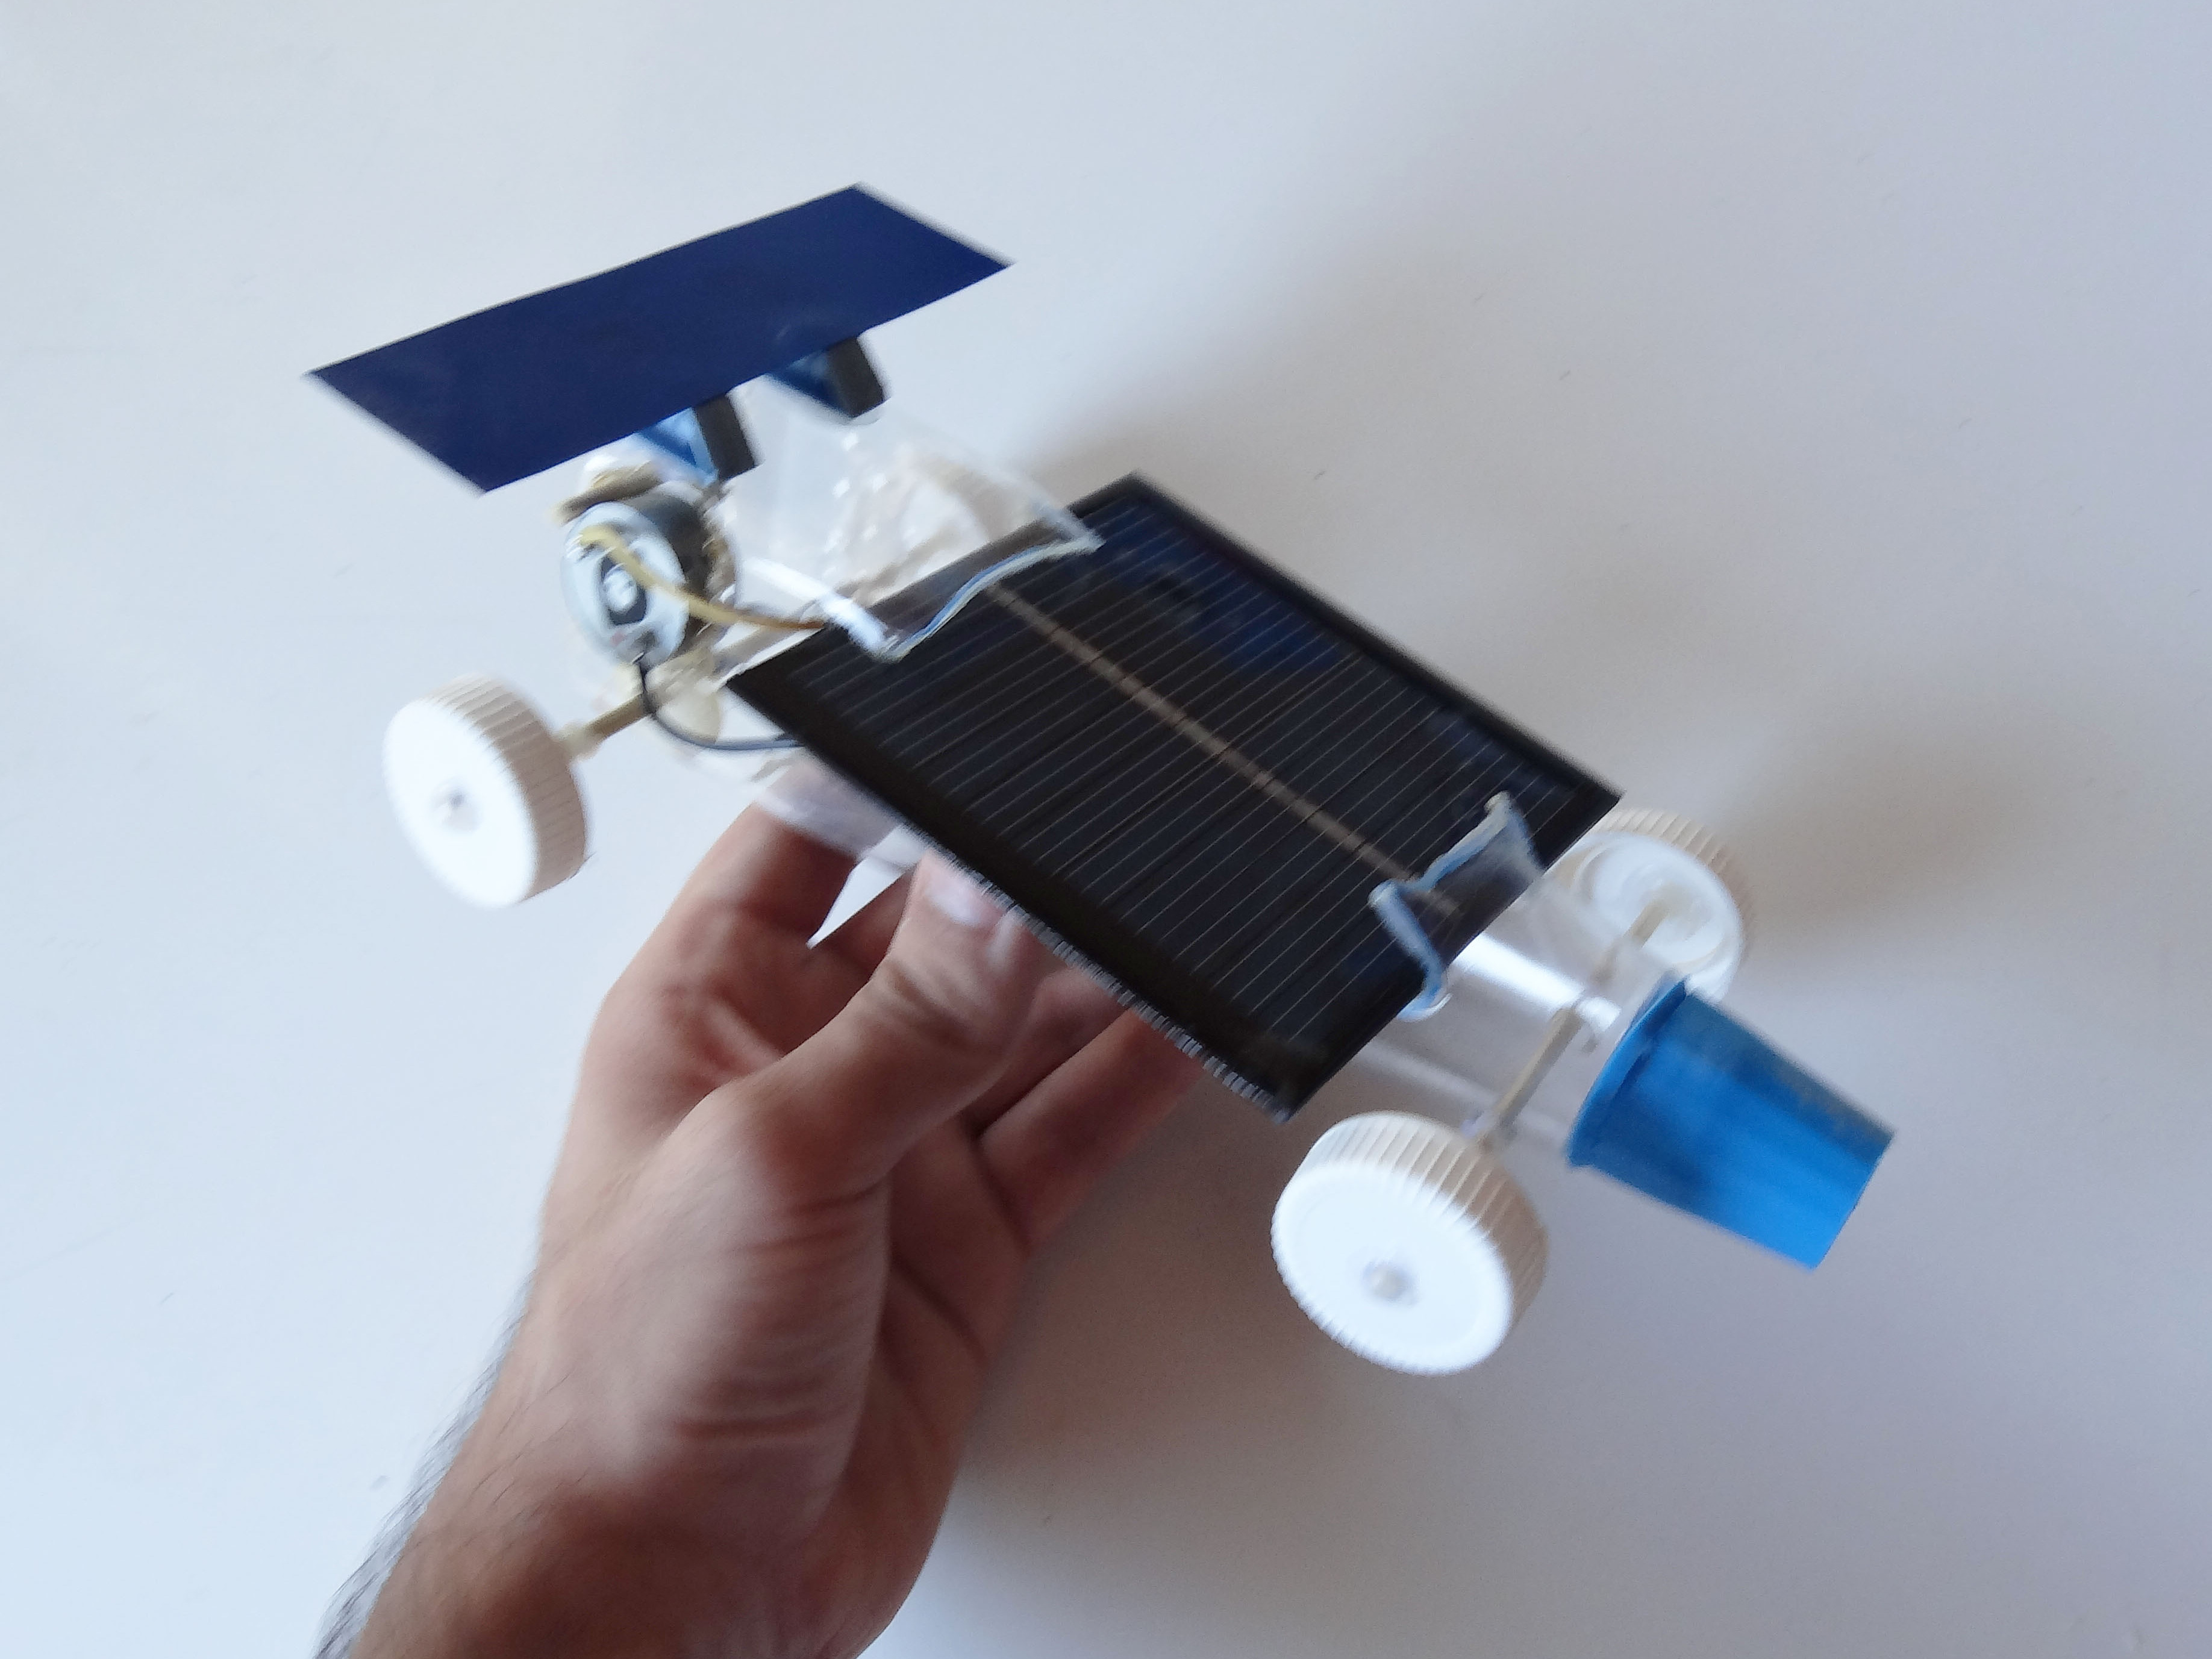 o Hacer Un Autito Solar Casero together with Tracked additionally Solar Tape moreover Tesla App Monitors Powerwall Solar Home Energy likewise Watch. on solar panel diy